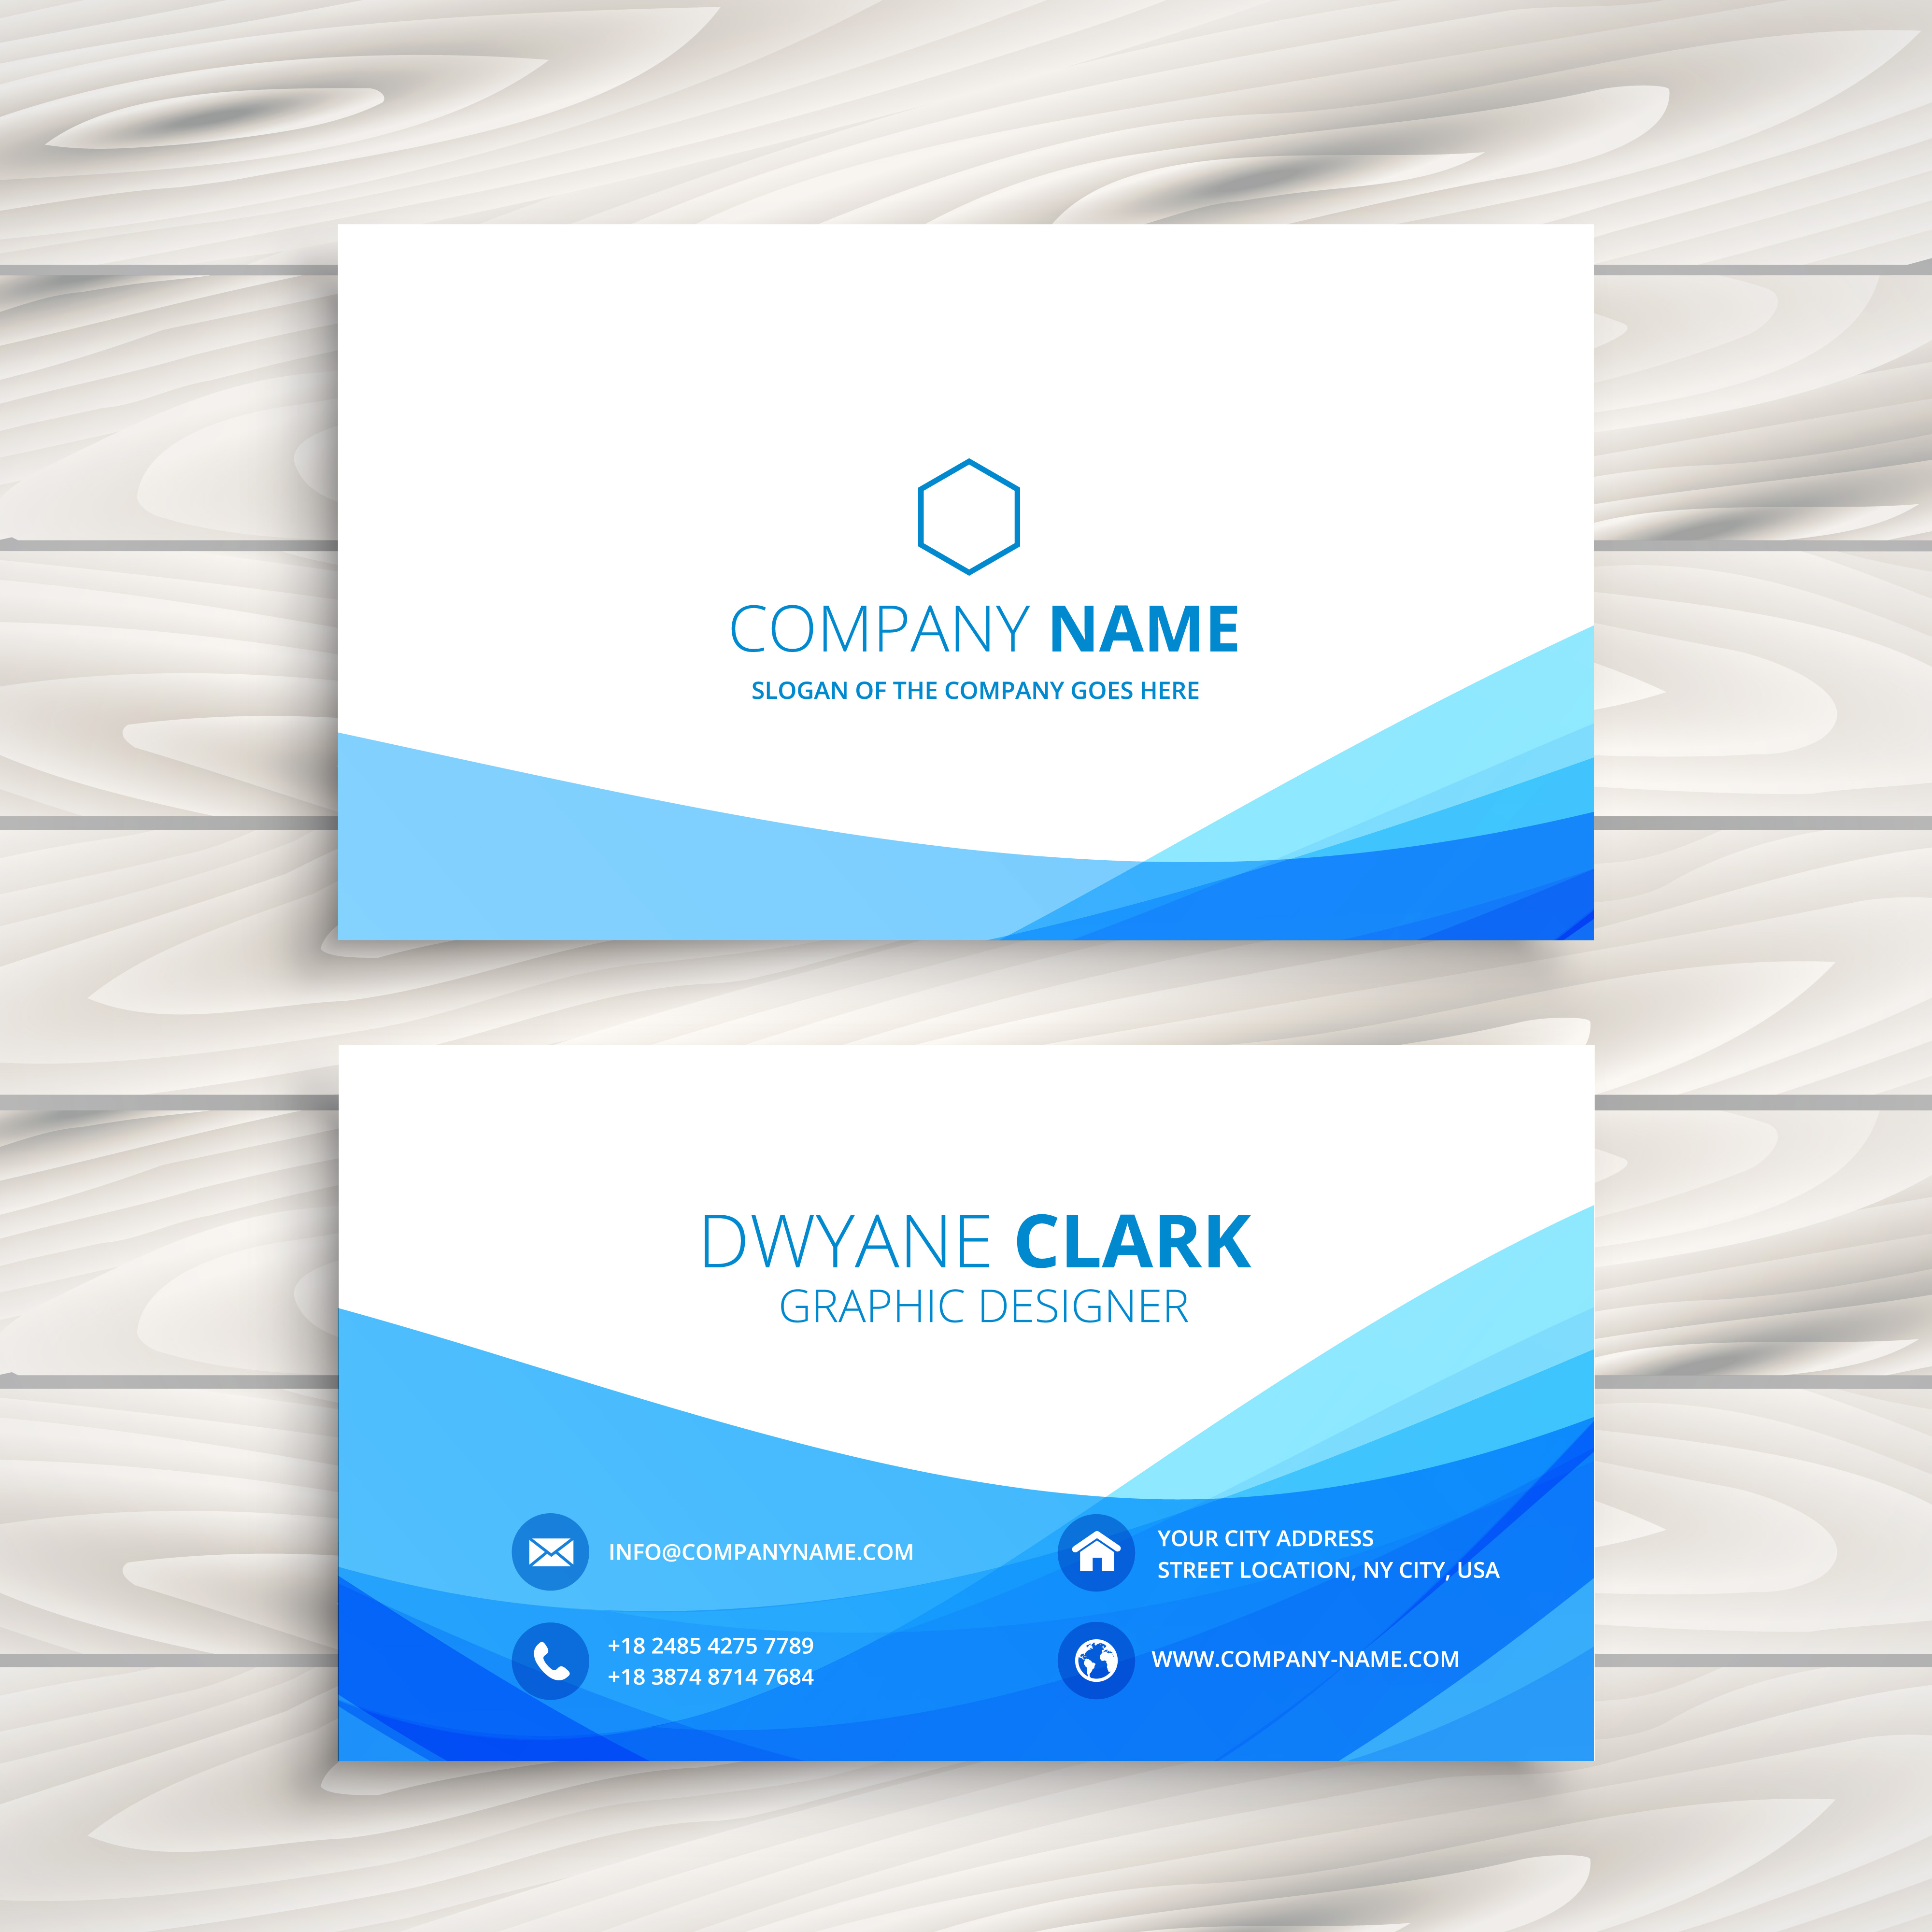 Blue Corporate Stationary Pack By Betty Design: Abstract Wave Business Card Vector Design Illustration